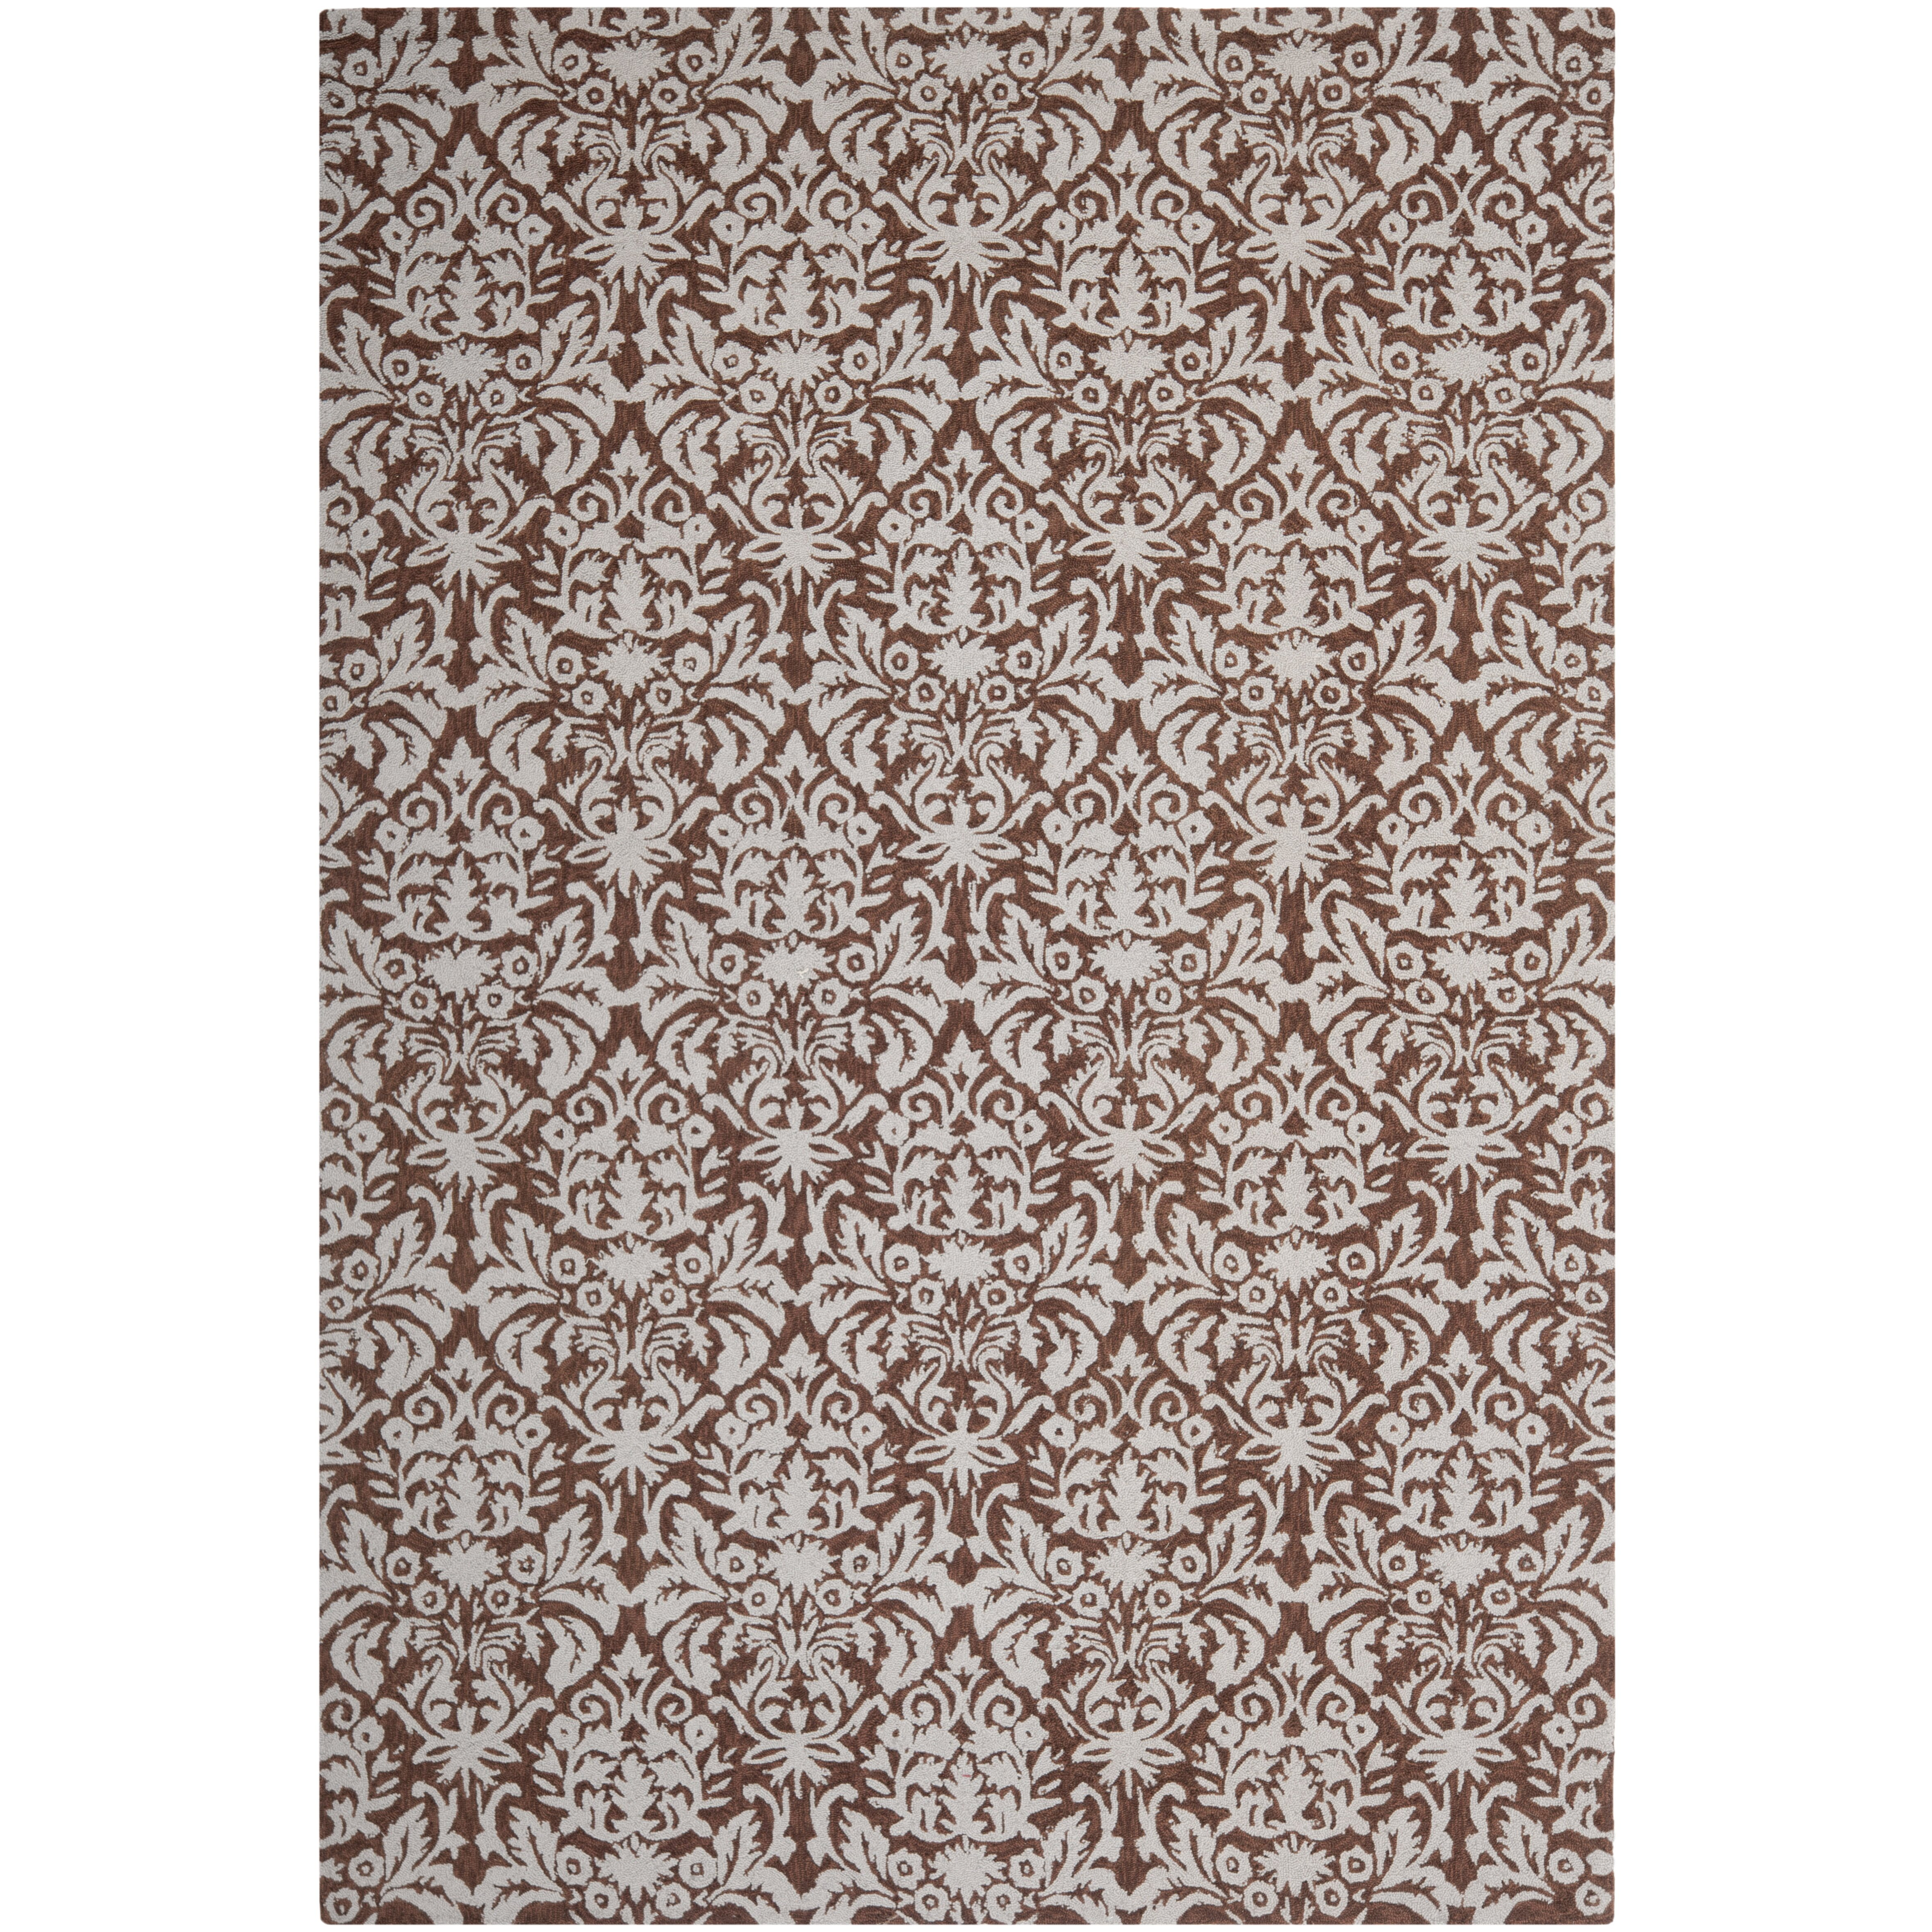 Safavieh chelsea brown gray rug reviews wayfair for Grey and tan rug